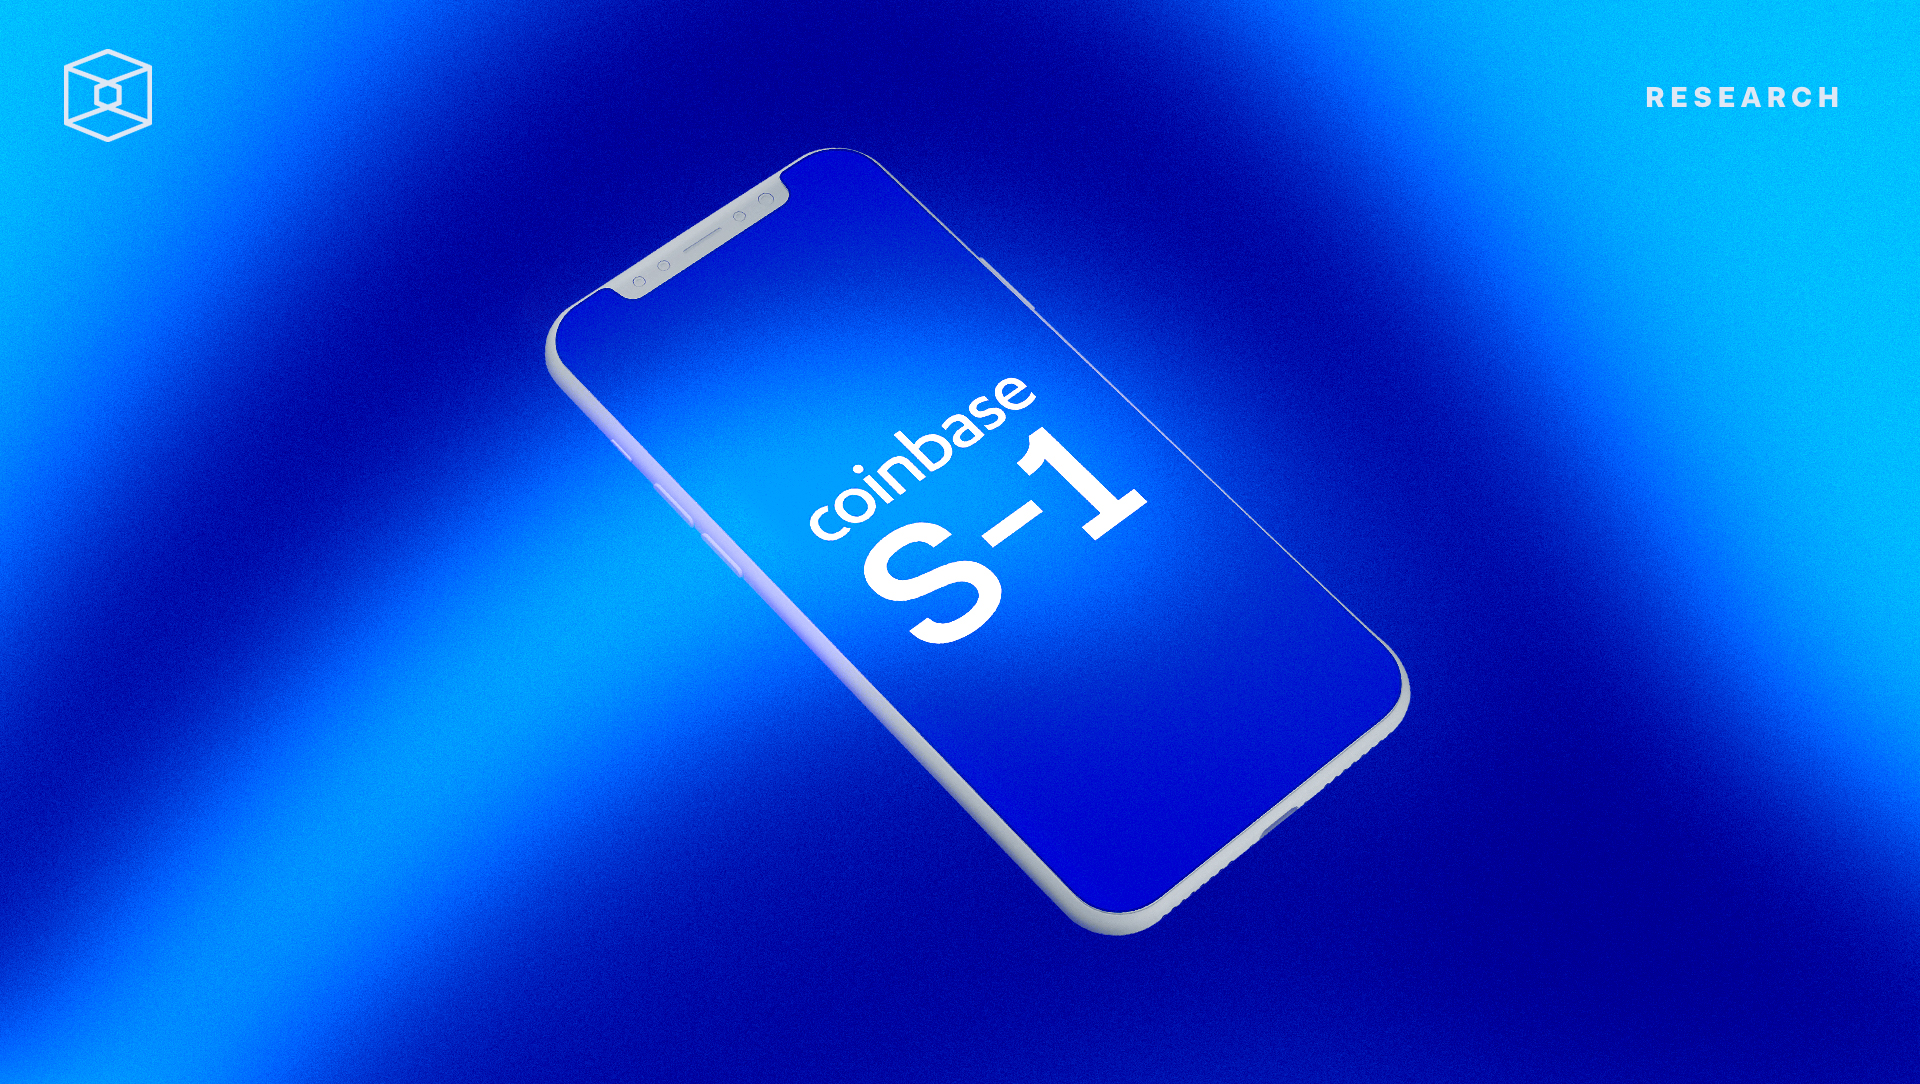 Coinbase S-1 First Impressions: The Block Research